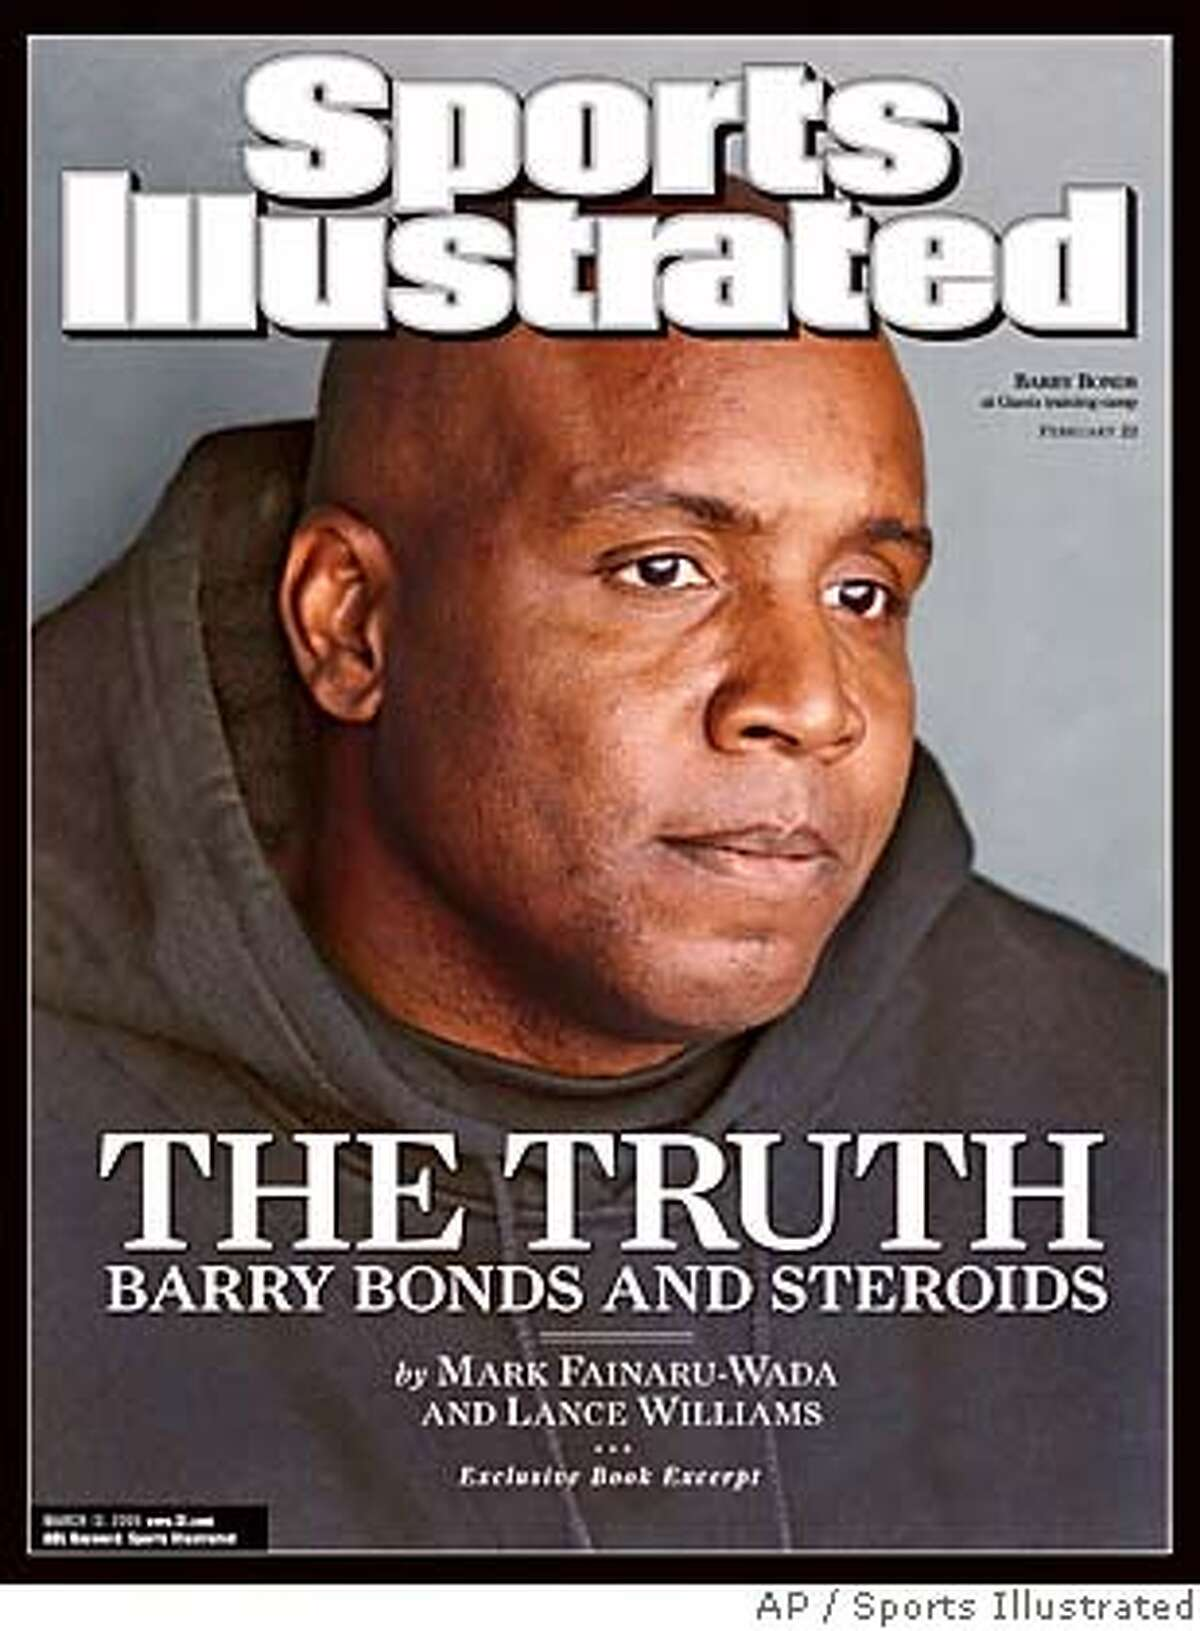 """This image provided by Sports Illustrated shows the cover of the March 13, 2006 issue featuring the San Francisco Giants' Barry Bonds. The issue features an excerpt of """"Game of Shadows,"""" a book written by two San Francisco Chronicle reporters, which provides details of the baseball slugger's extensive doping program including his use of a vast array of performance-enhancing drugs, for at least five seasons beginning in 1998. (AP Photo/Sports Illustrated, John W. McDonough)"""